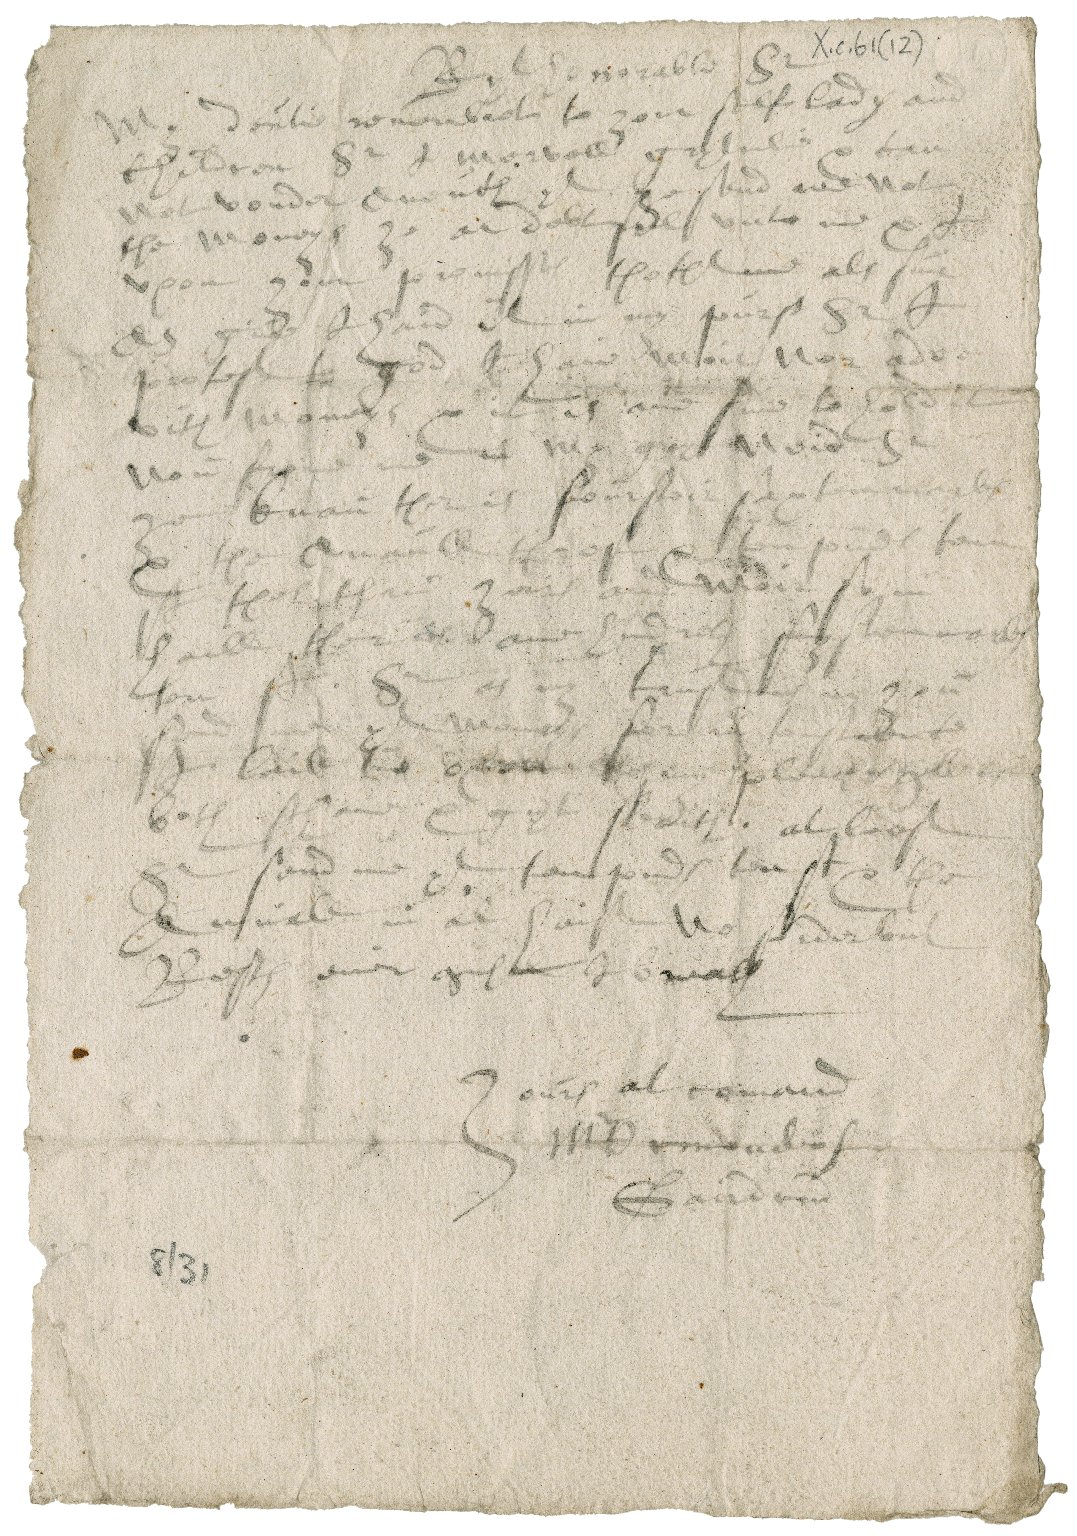 Letter from M. Ormond of Gairdine to David Rattray of Craighall